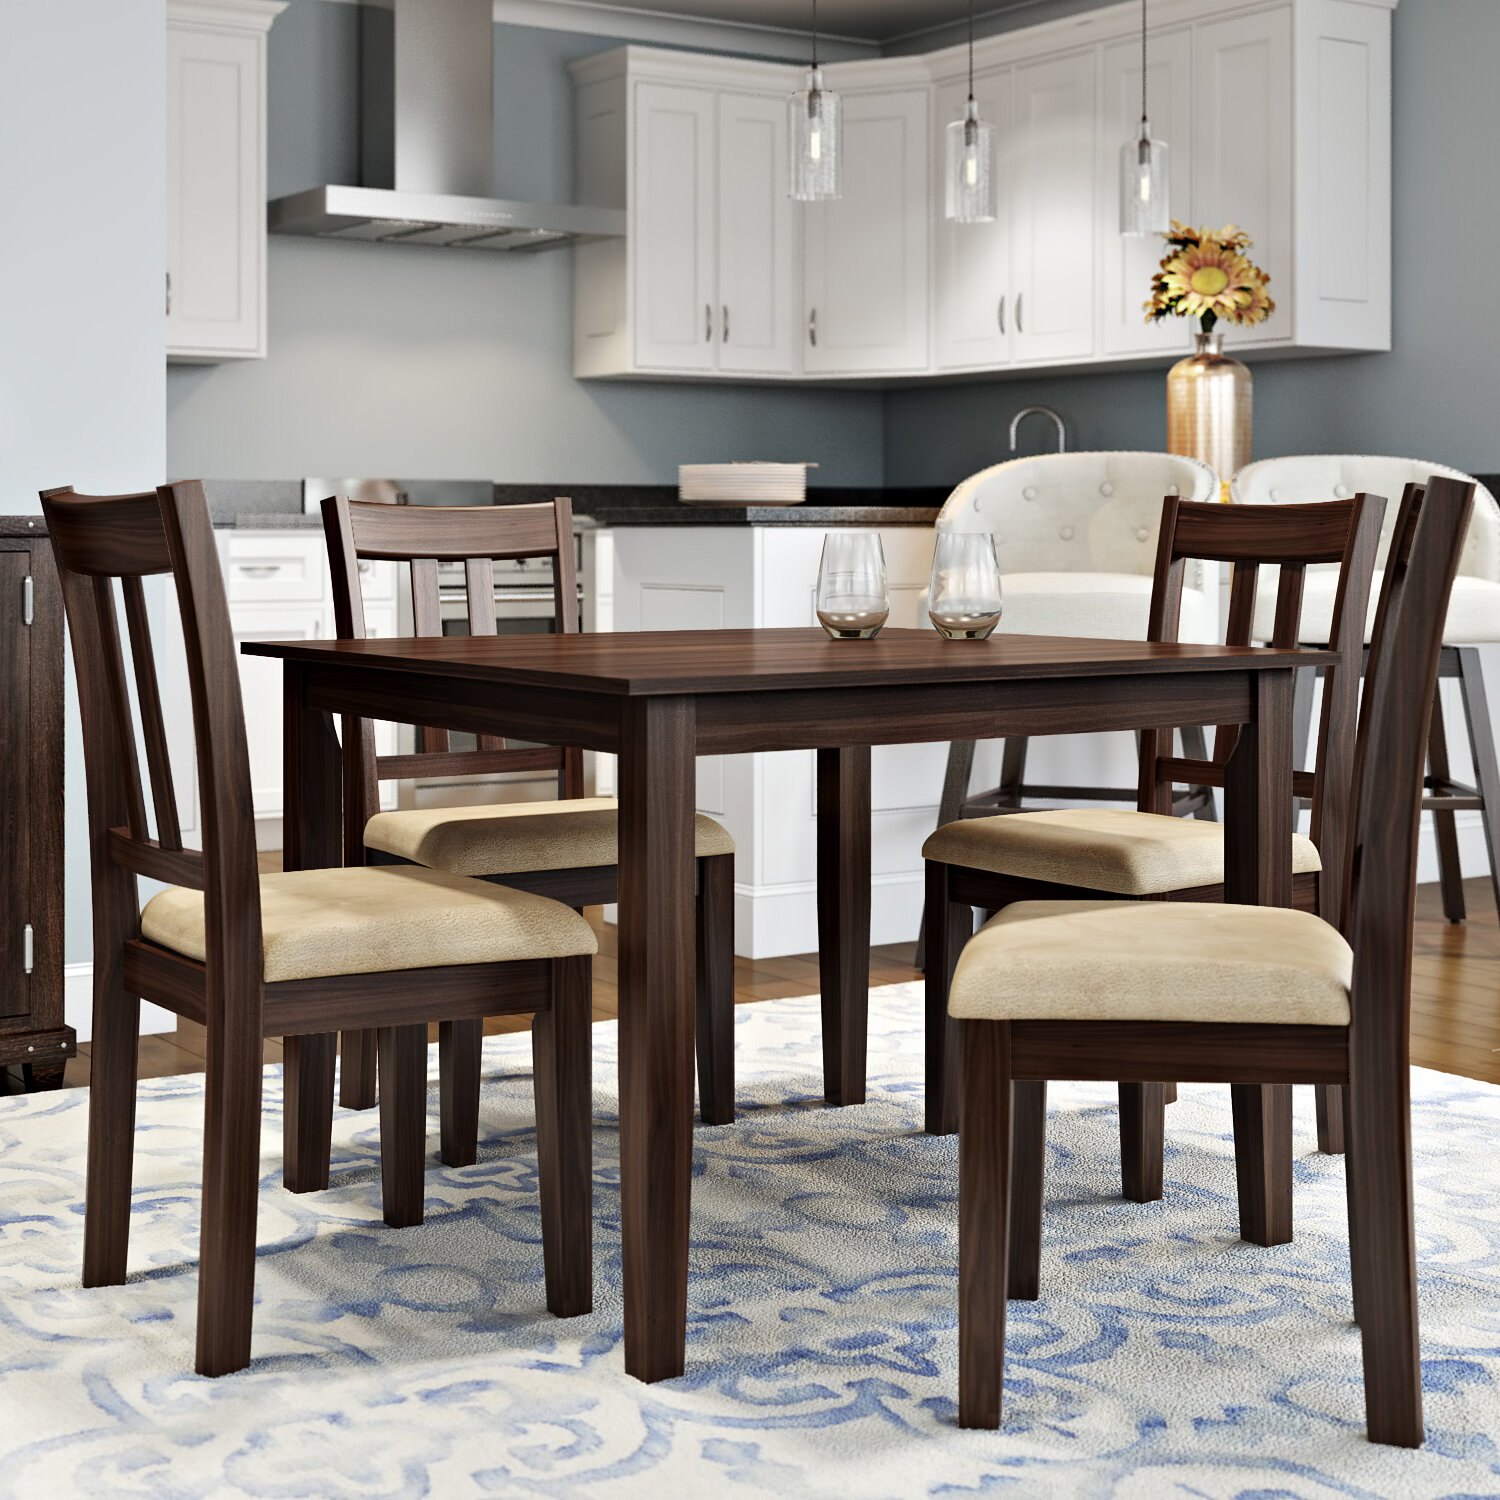 Delicieux Alcott Hill Primrose Road 5 Piece Dining Set U0026 Reviews | Wayfair